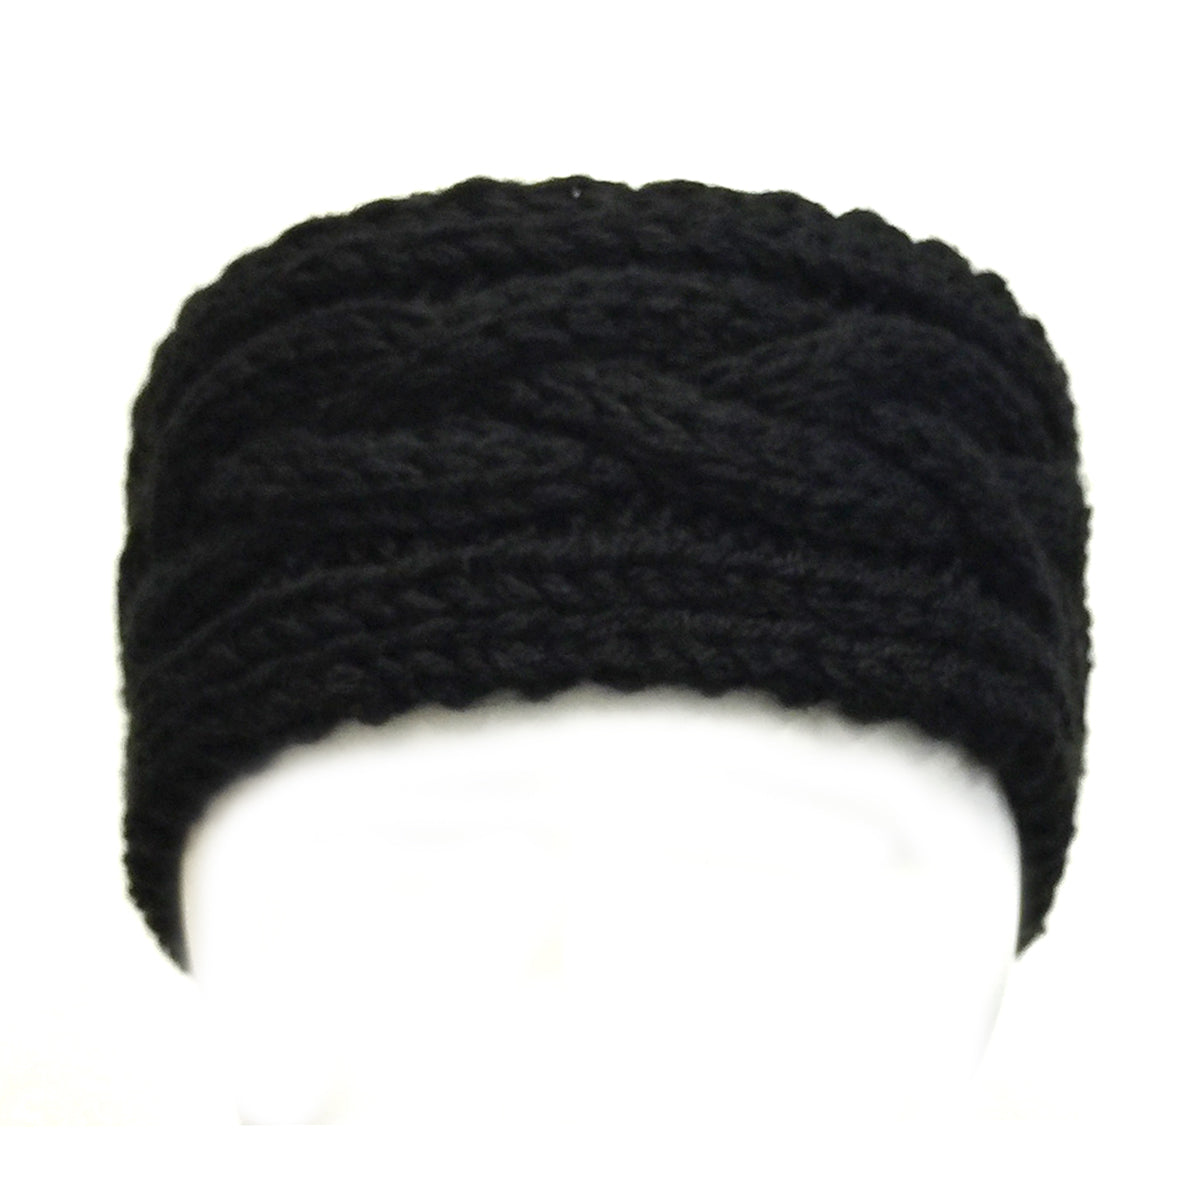 Wrapables Thick Cable Knit Headband for Teens and Girls